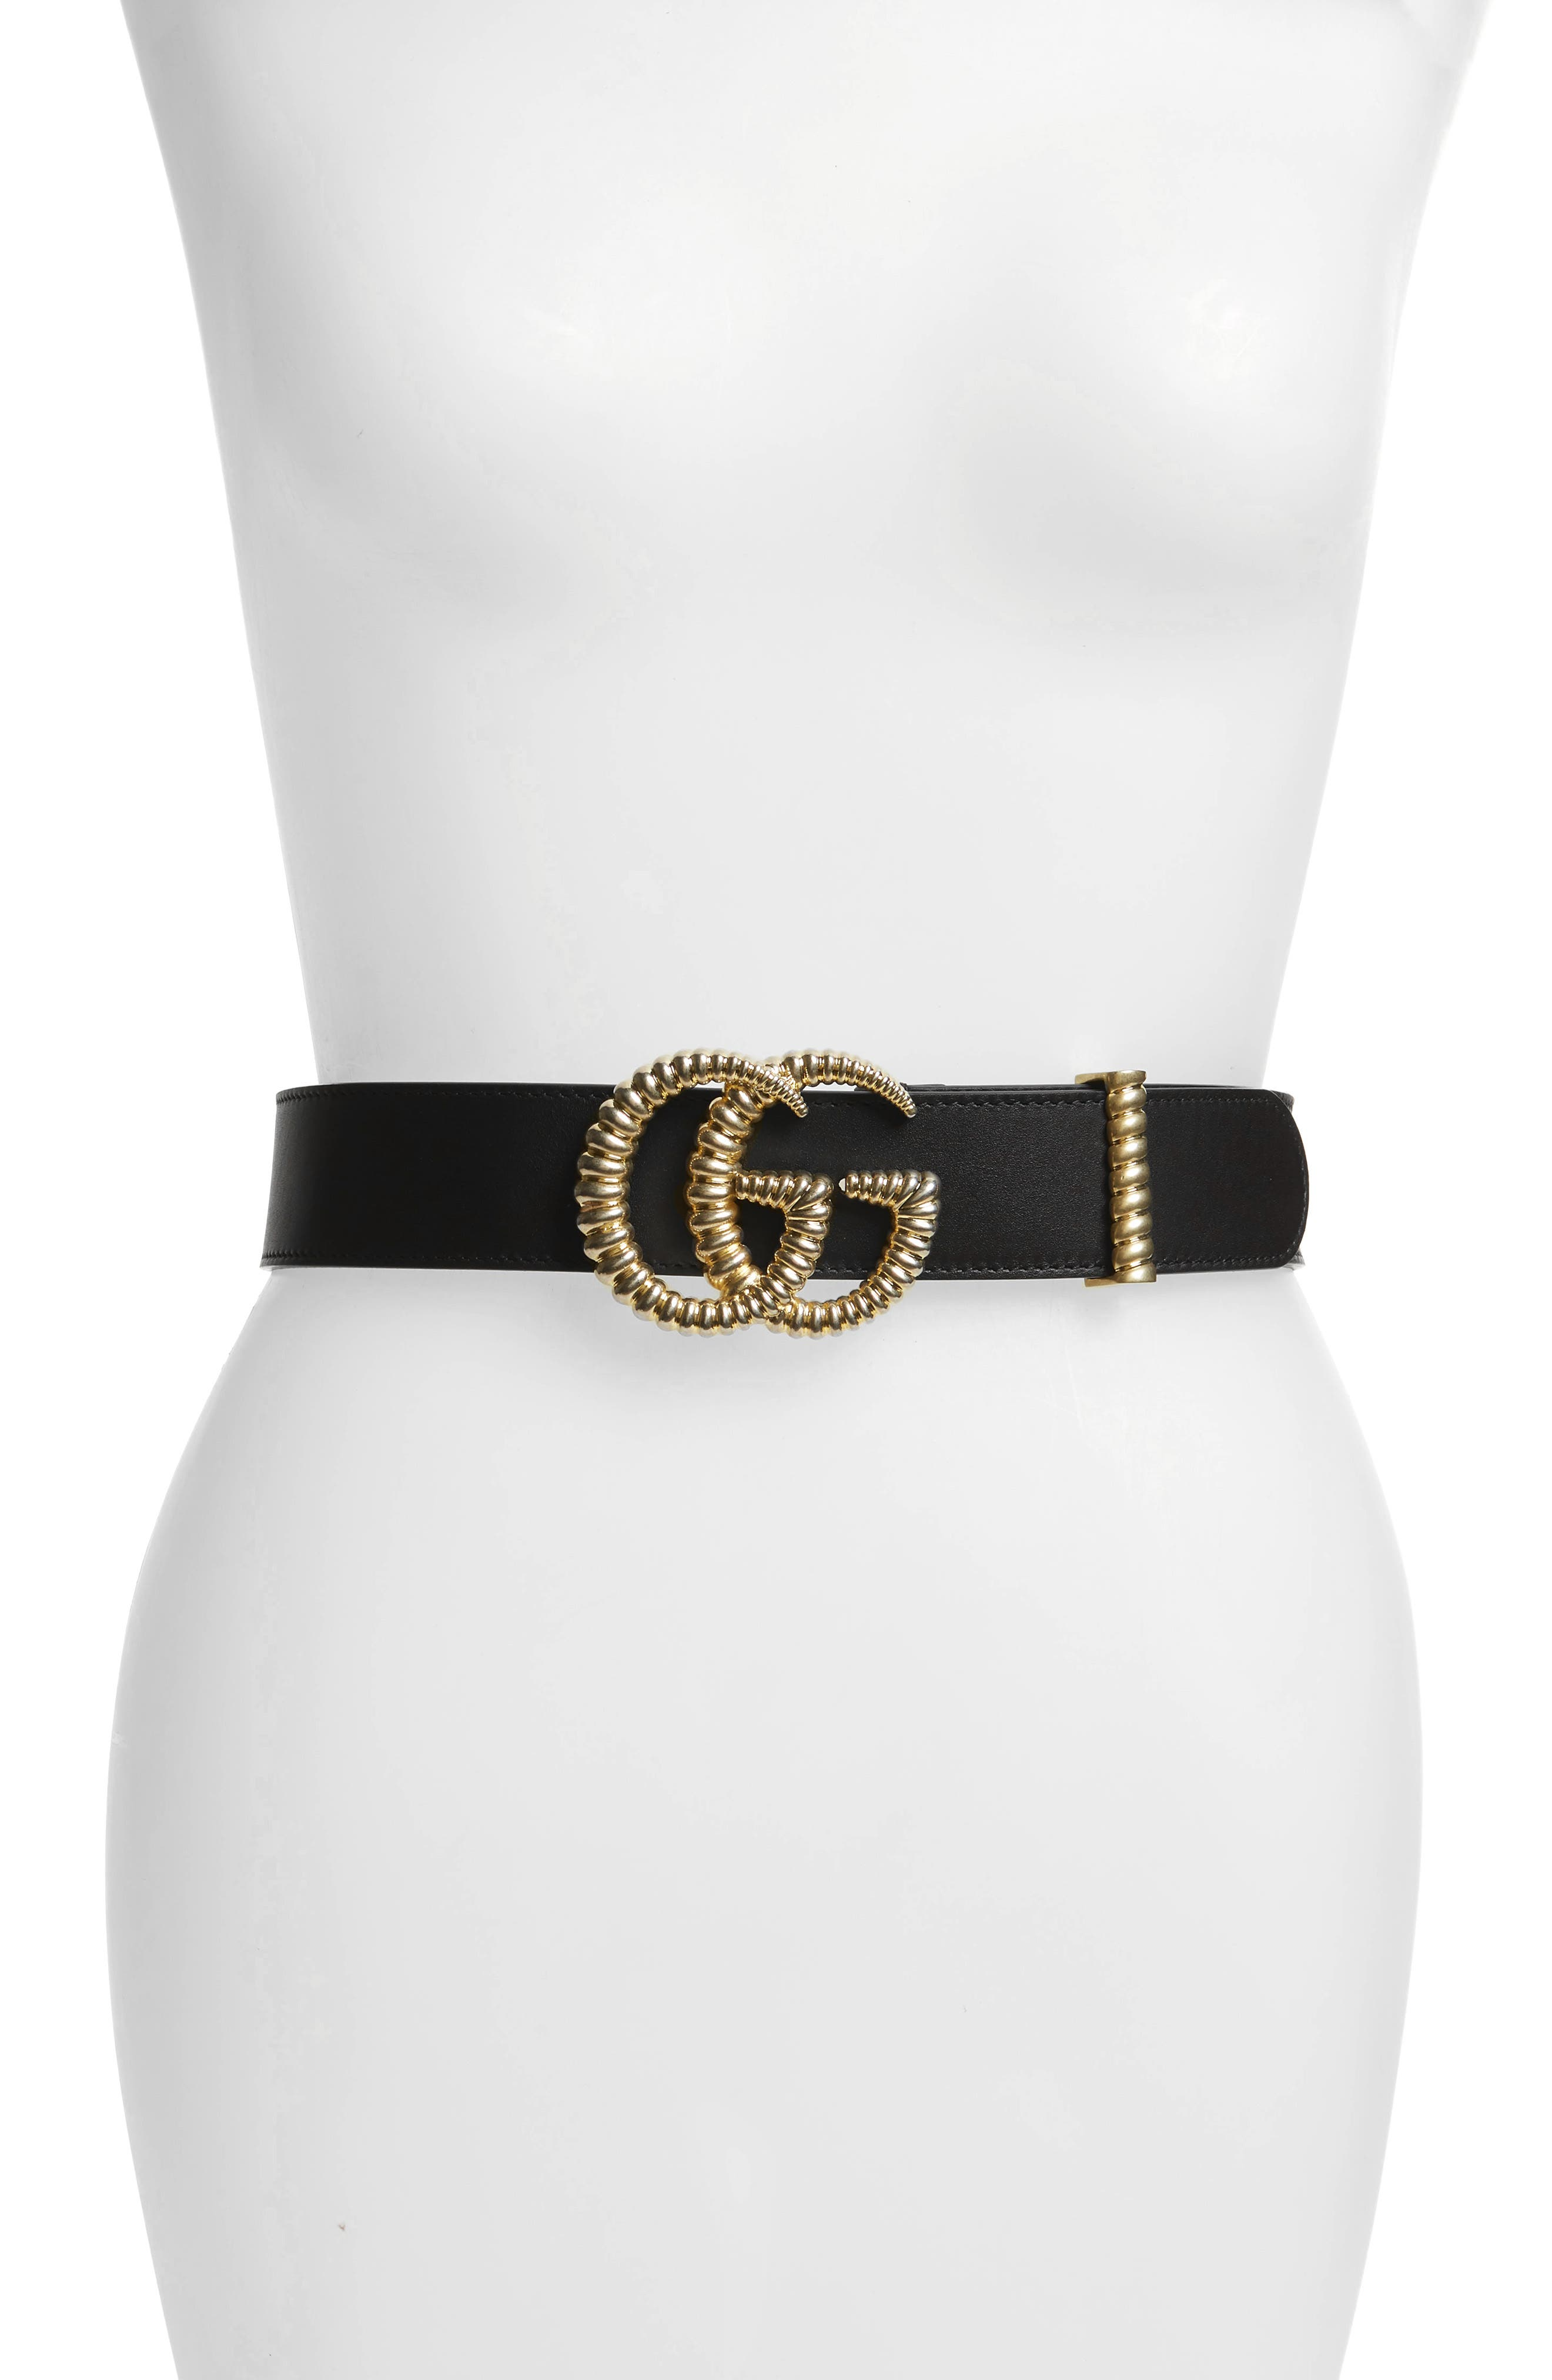 Textured GG Logo Leather Belt,                             Main thumbnail 1, color,                             001